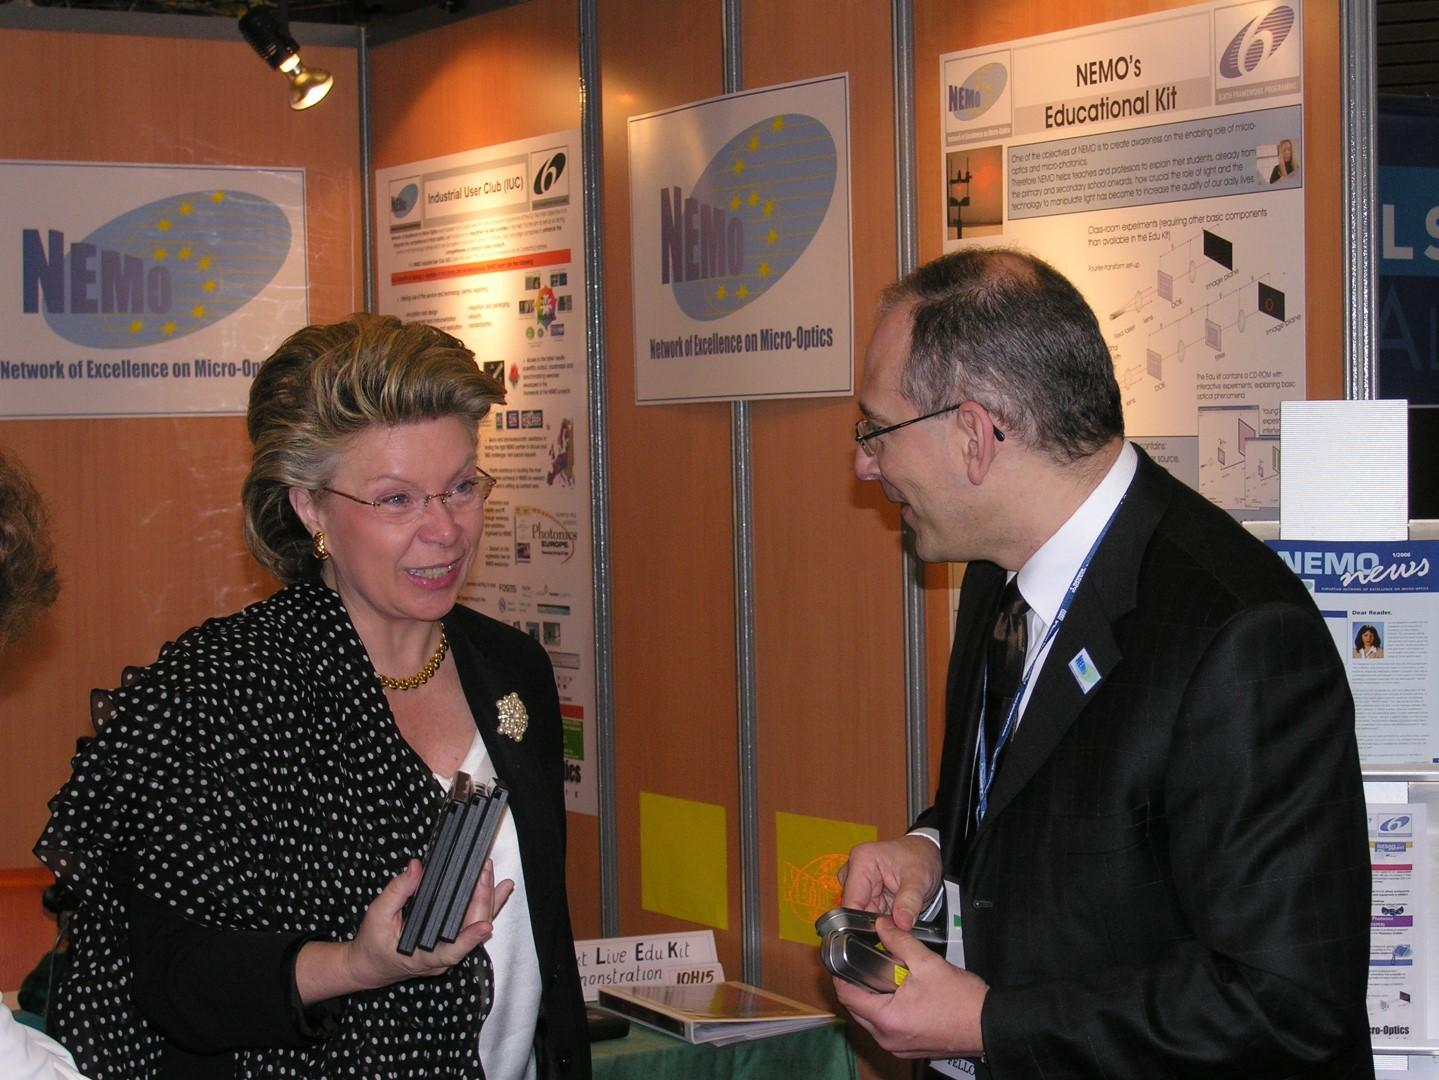 Viviane Reding at NEMO booth Large